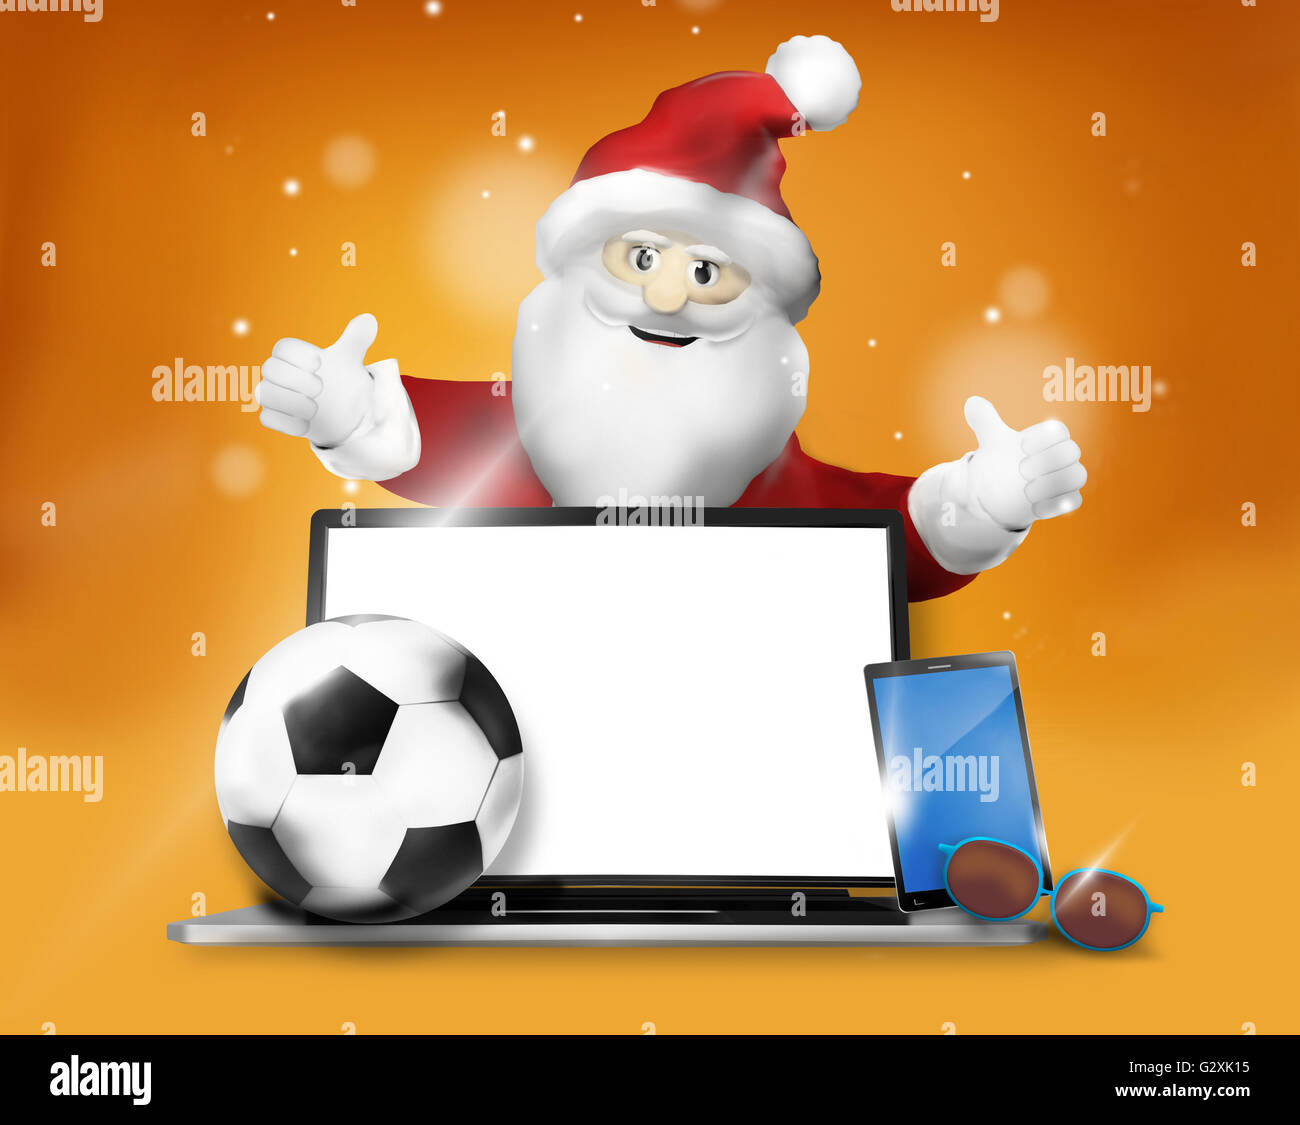 Christmas Gifts 3D Design Background Stock Photo